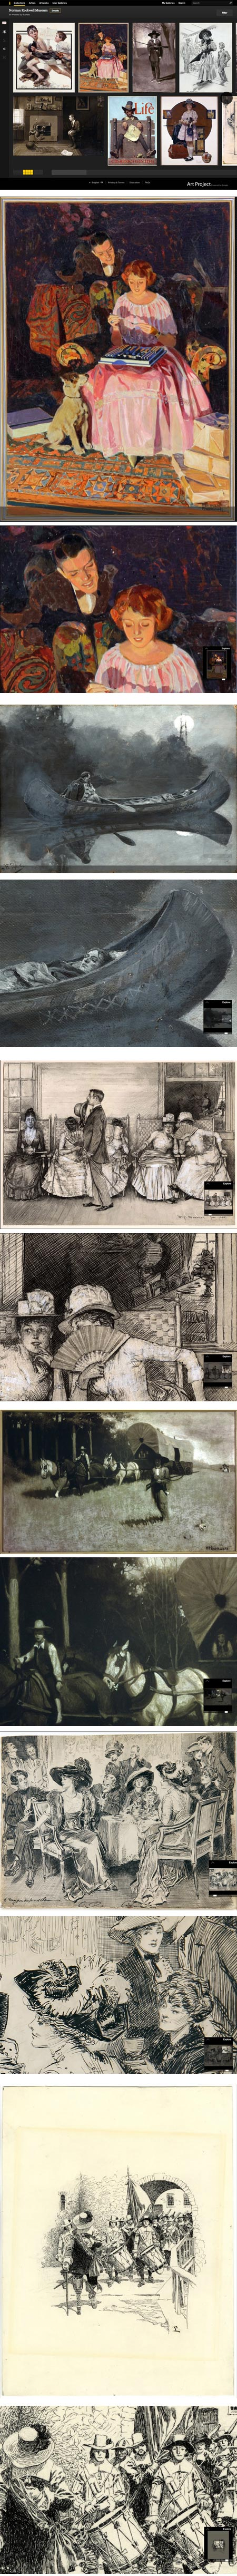 Norman Rockwell Museum on Google Art Project: Norman Rockwell, Howard Pyle, William Smedley,  Norman Rockwell, Charles Dana Gibson, Howard Pyle